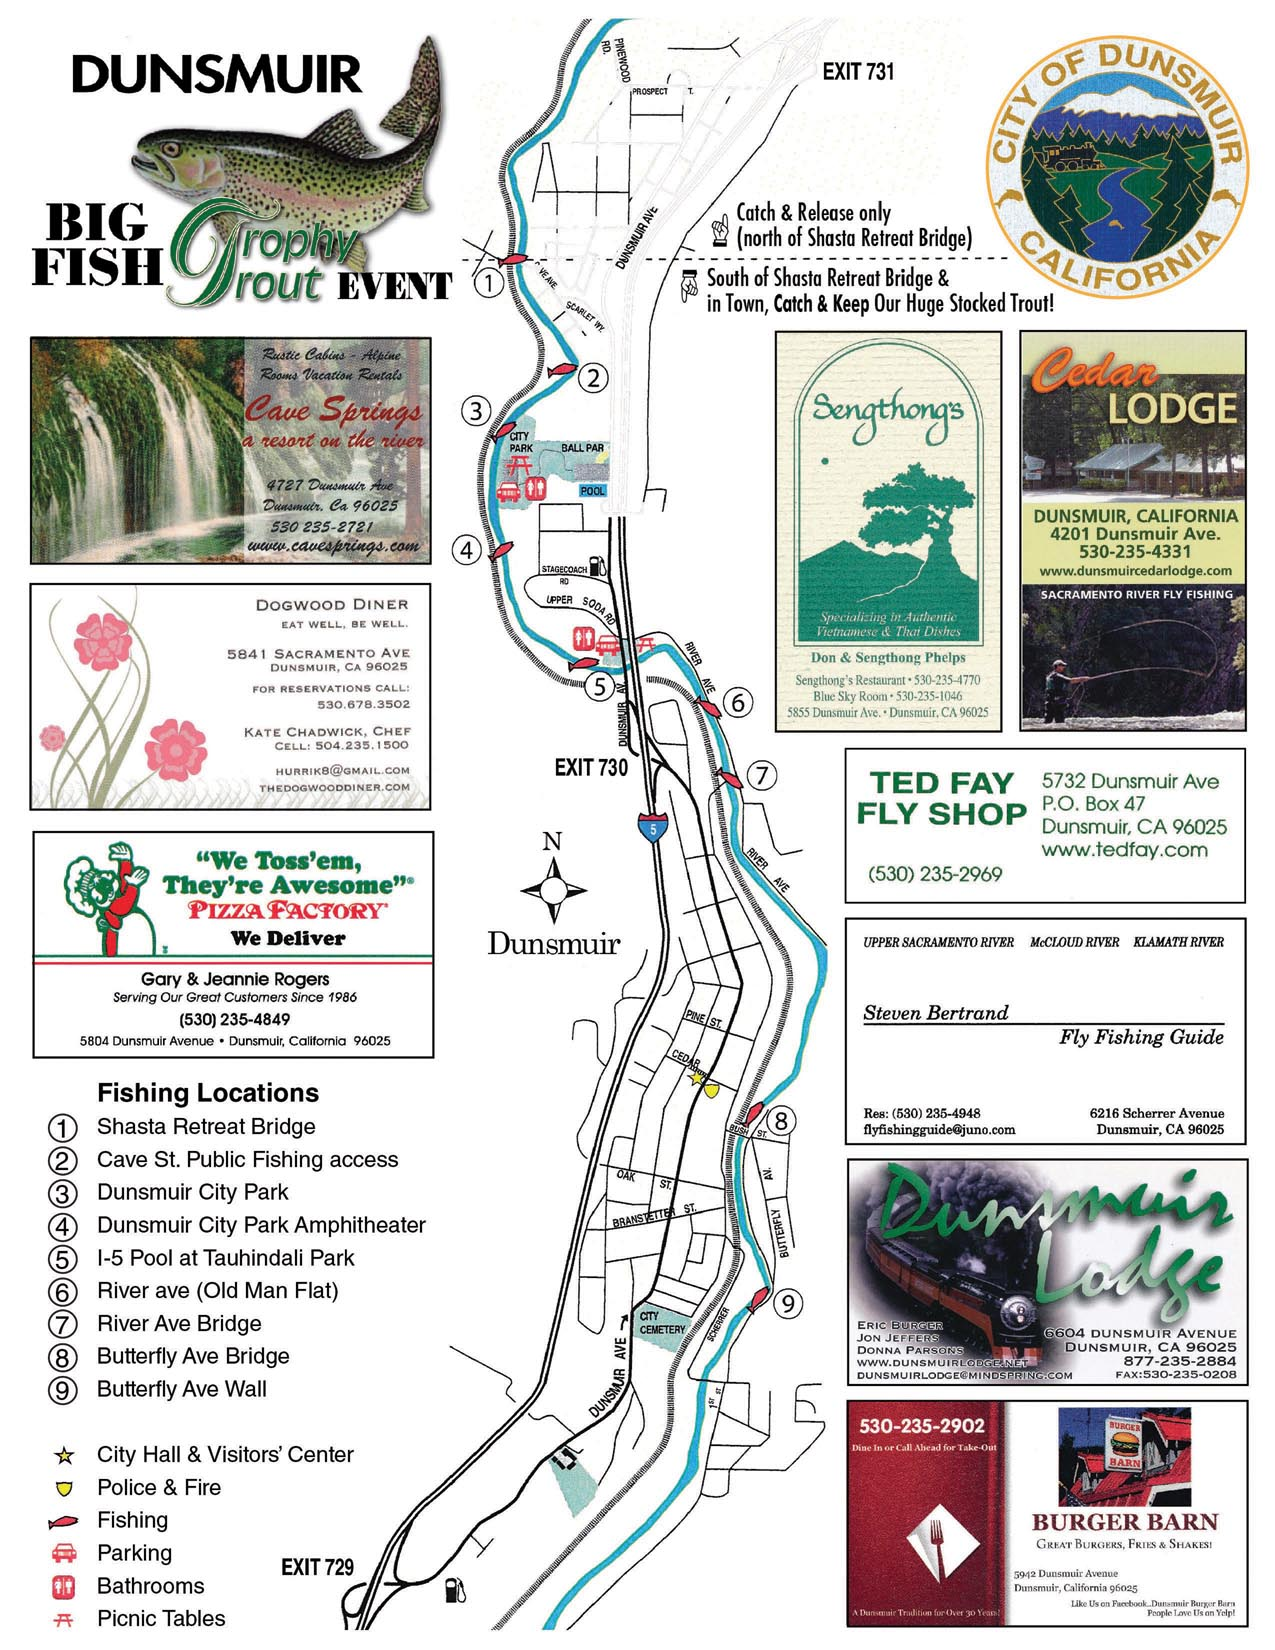 Dunsmuir trophy trout program big fish dunsmuir for Fish stocking ca